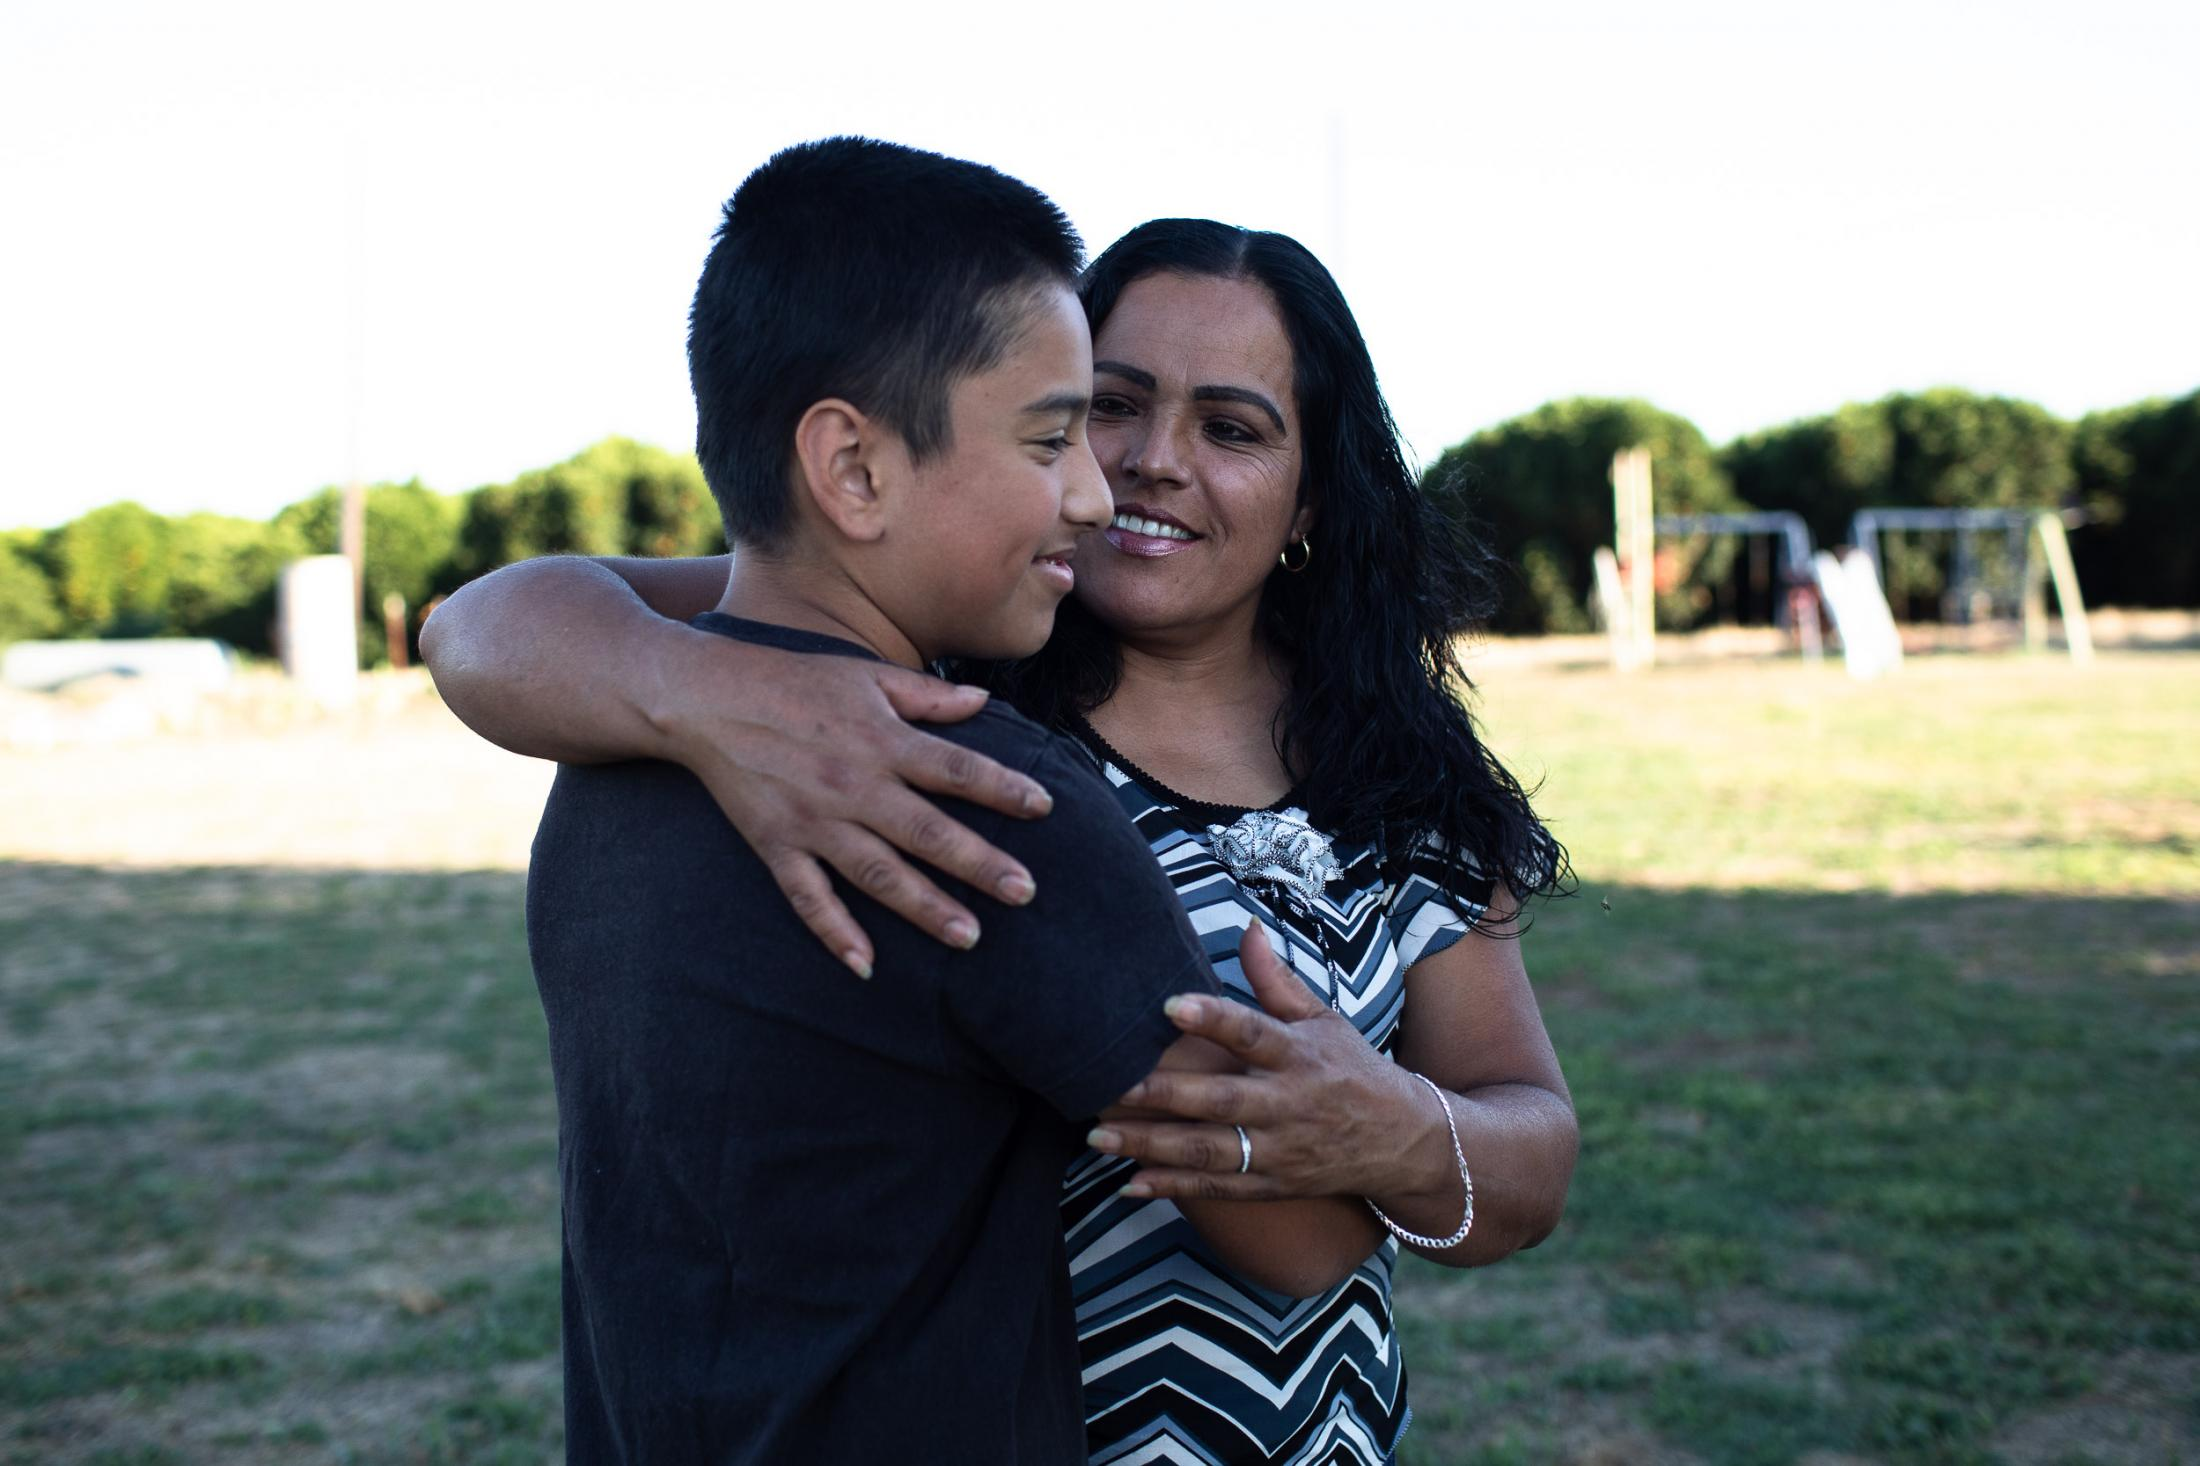 Fidelia Morales hugging her son Junior in their backyard that is surrounded by orange tress on all sides. c hlorpyrifos is a neurotoxic pesticide widely used in U.S. agriculture to kill agricultural pests. It is associated with neurodevelopmental harms in children. In October 2019, the state announced that under an enforceable agreement with manufacturers, all sales of chlorpyrifos to California growers would end by Feb. 6, 2020,